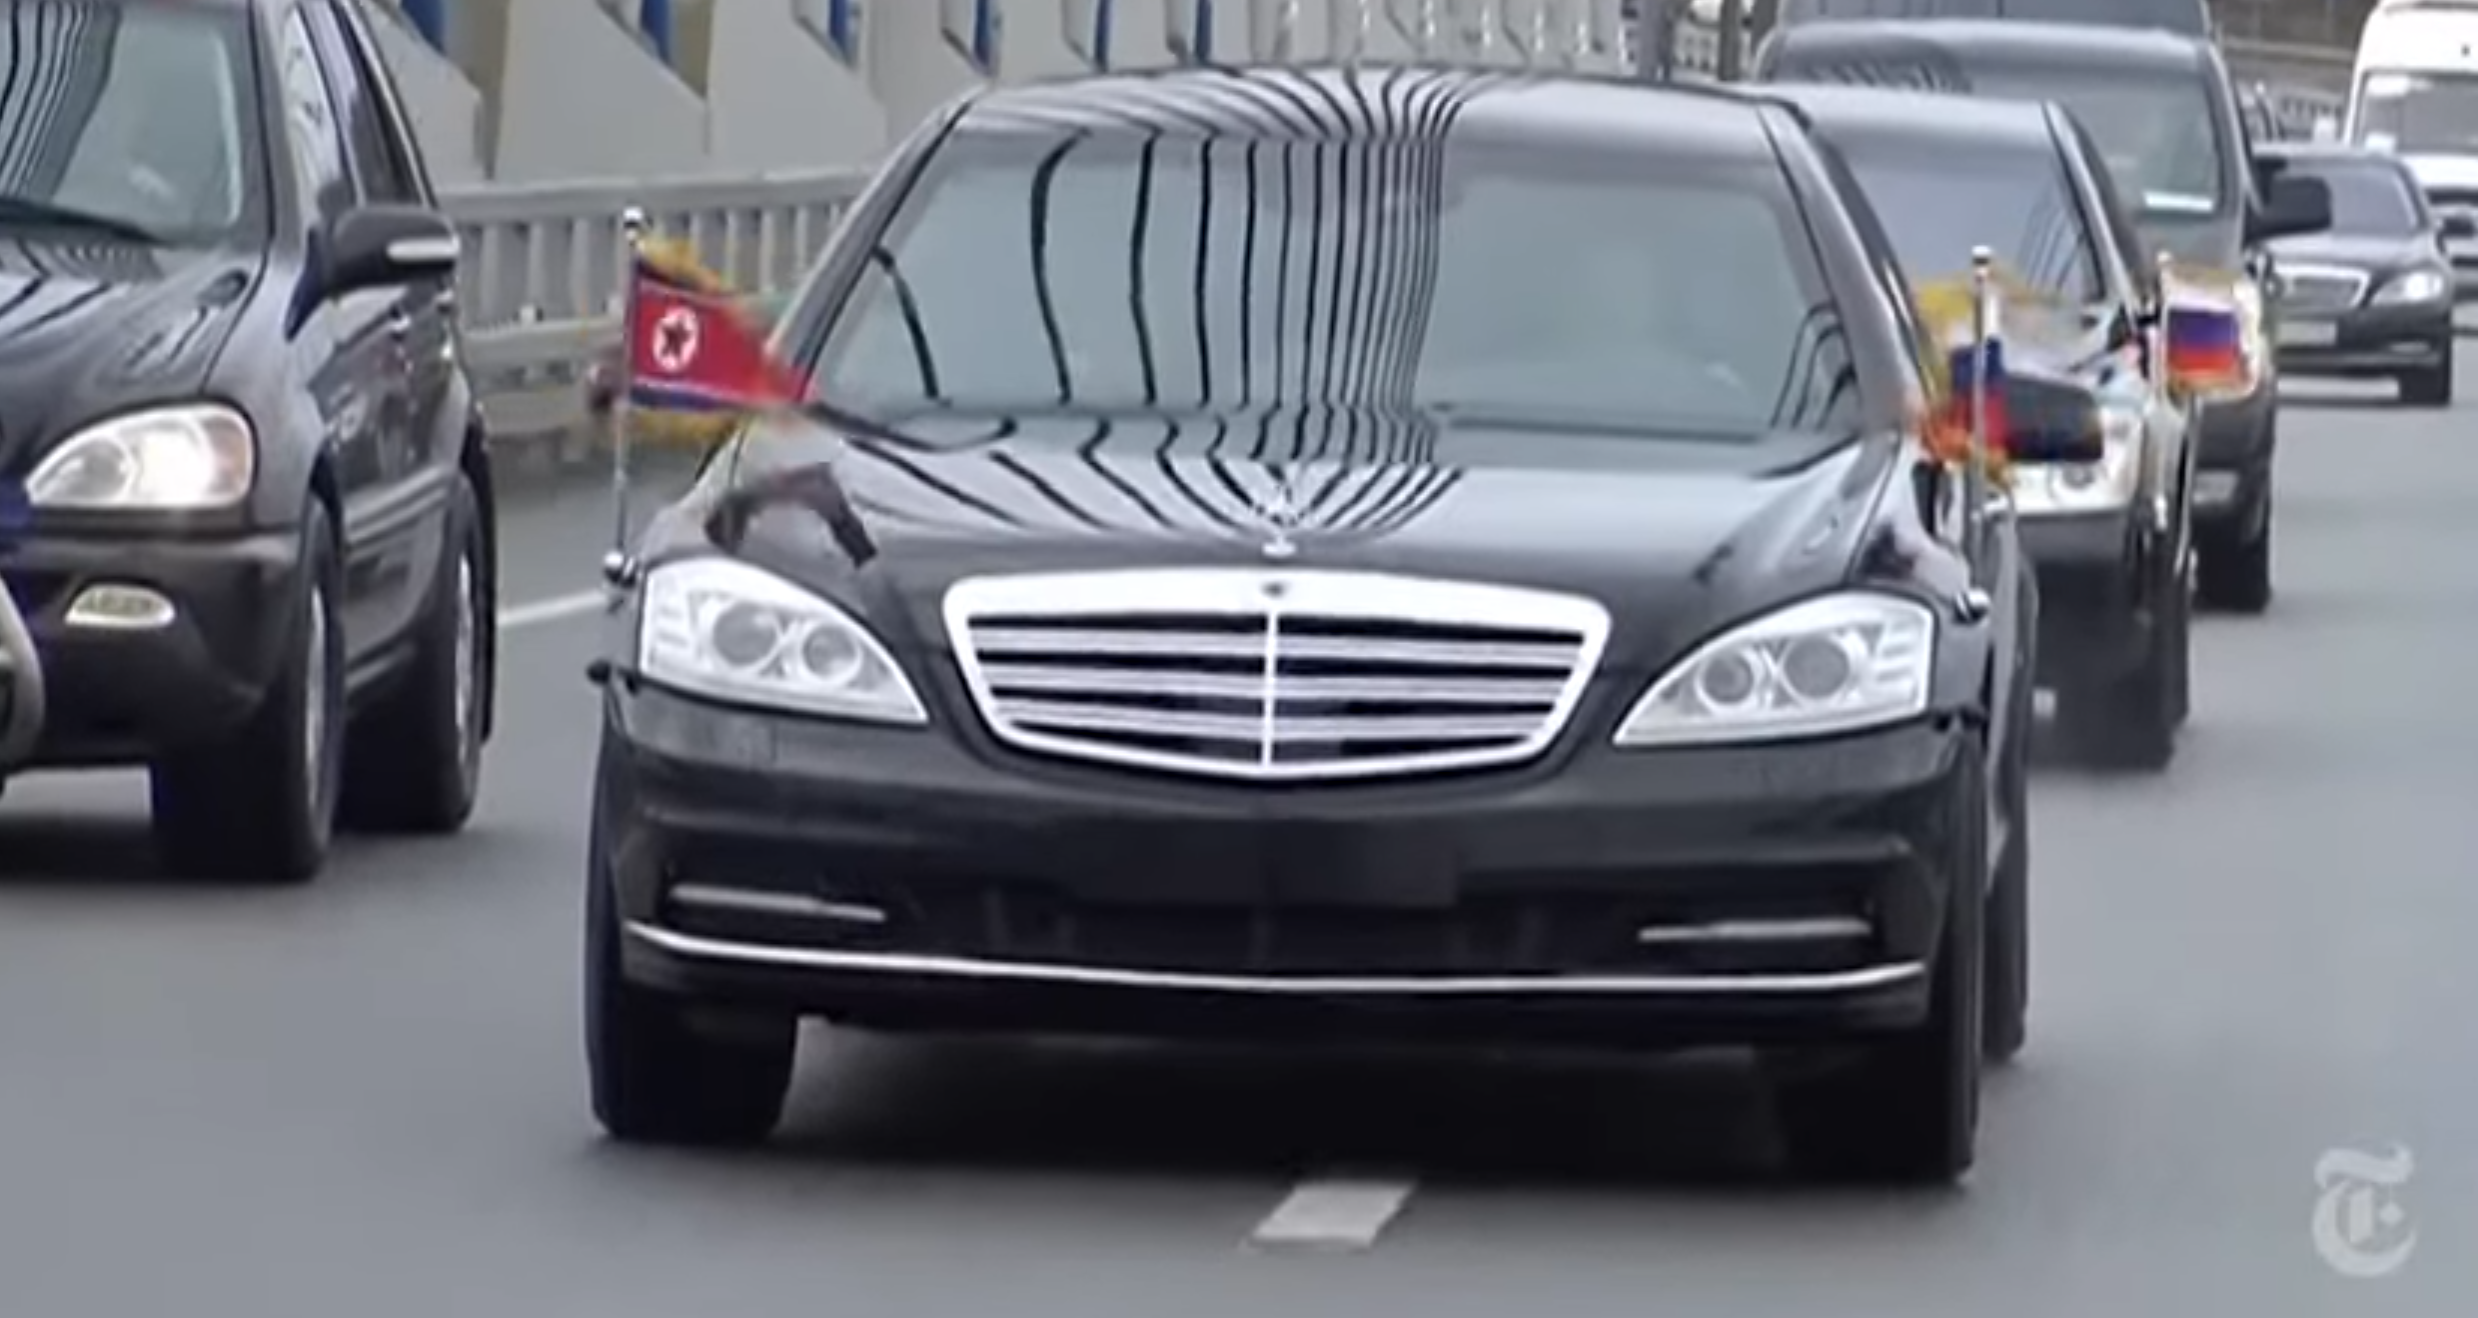 This Is How Kim Jong-un Circumvents Sanctions To Get The Luxury Cars He Craves